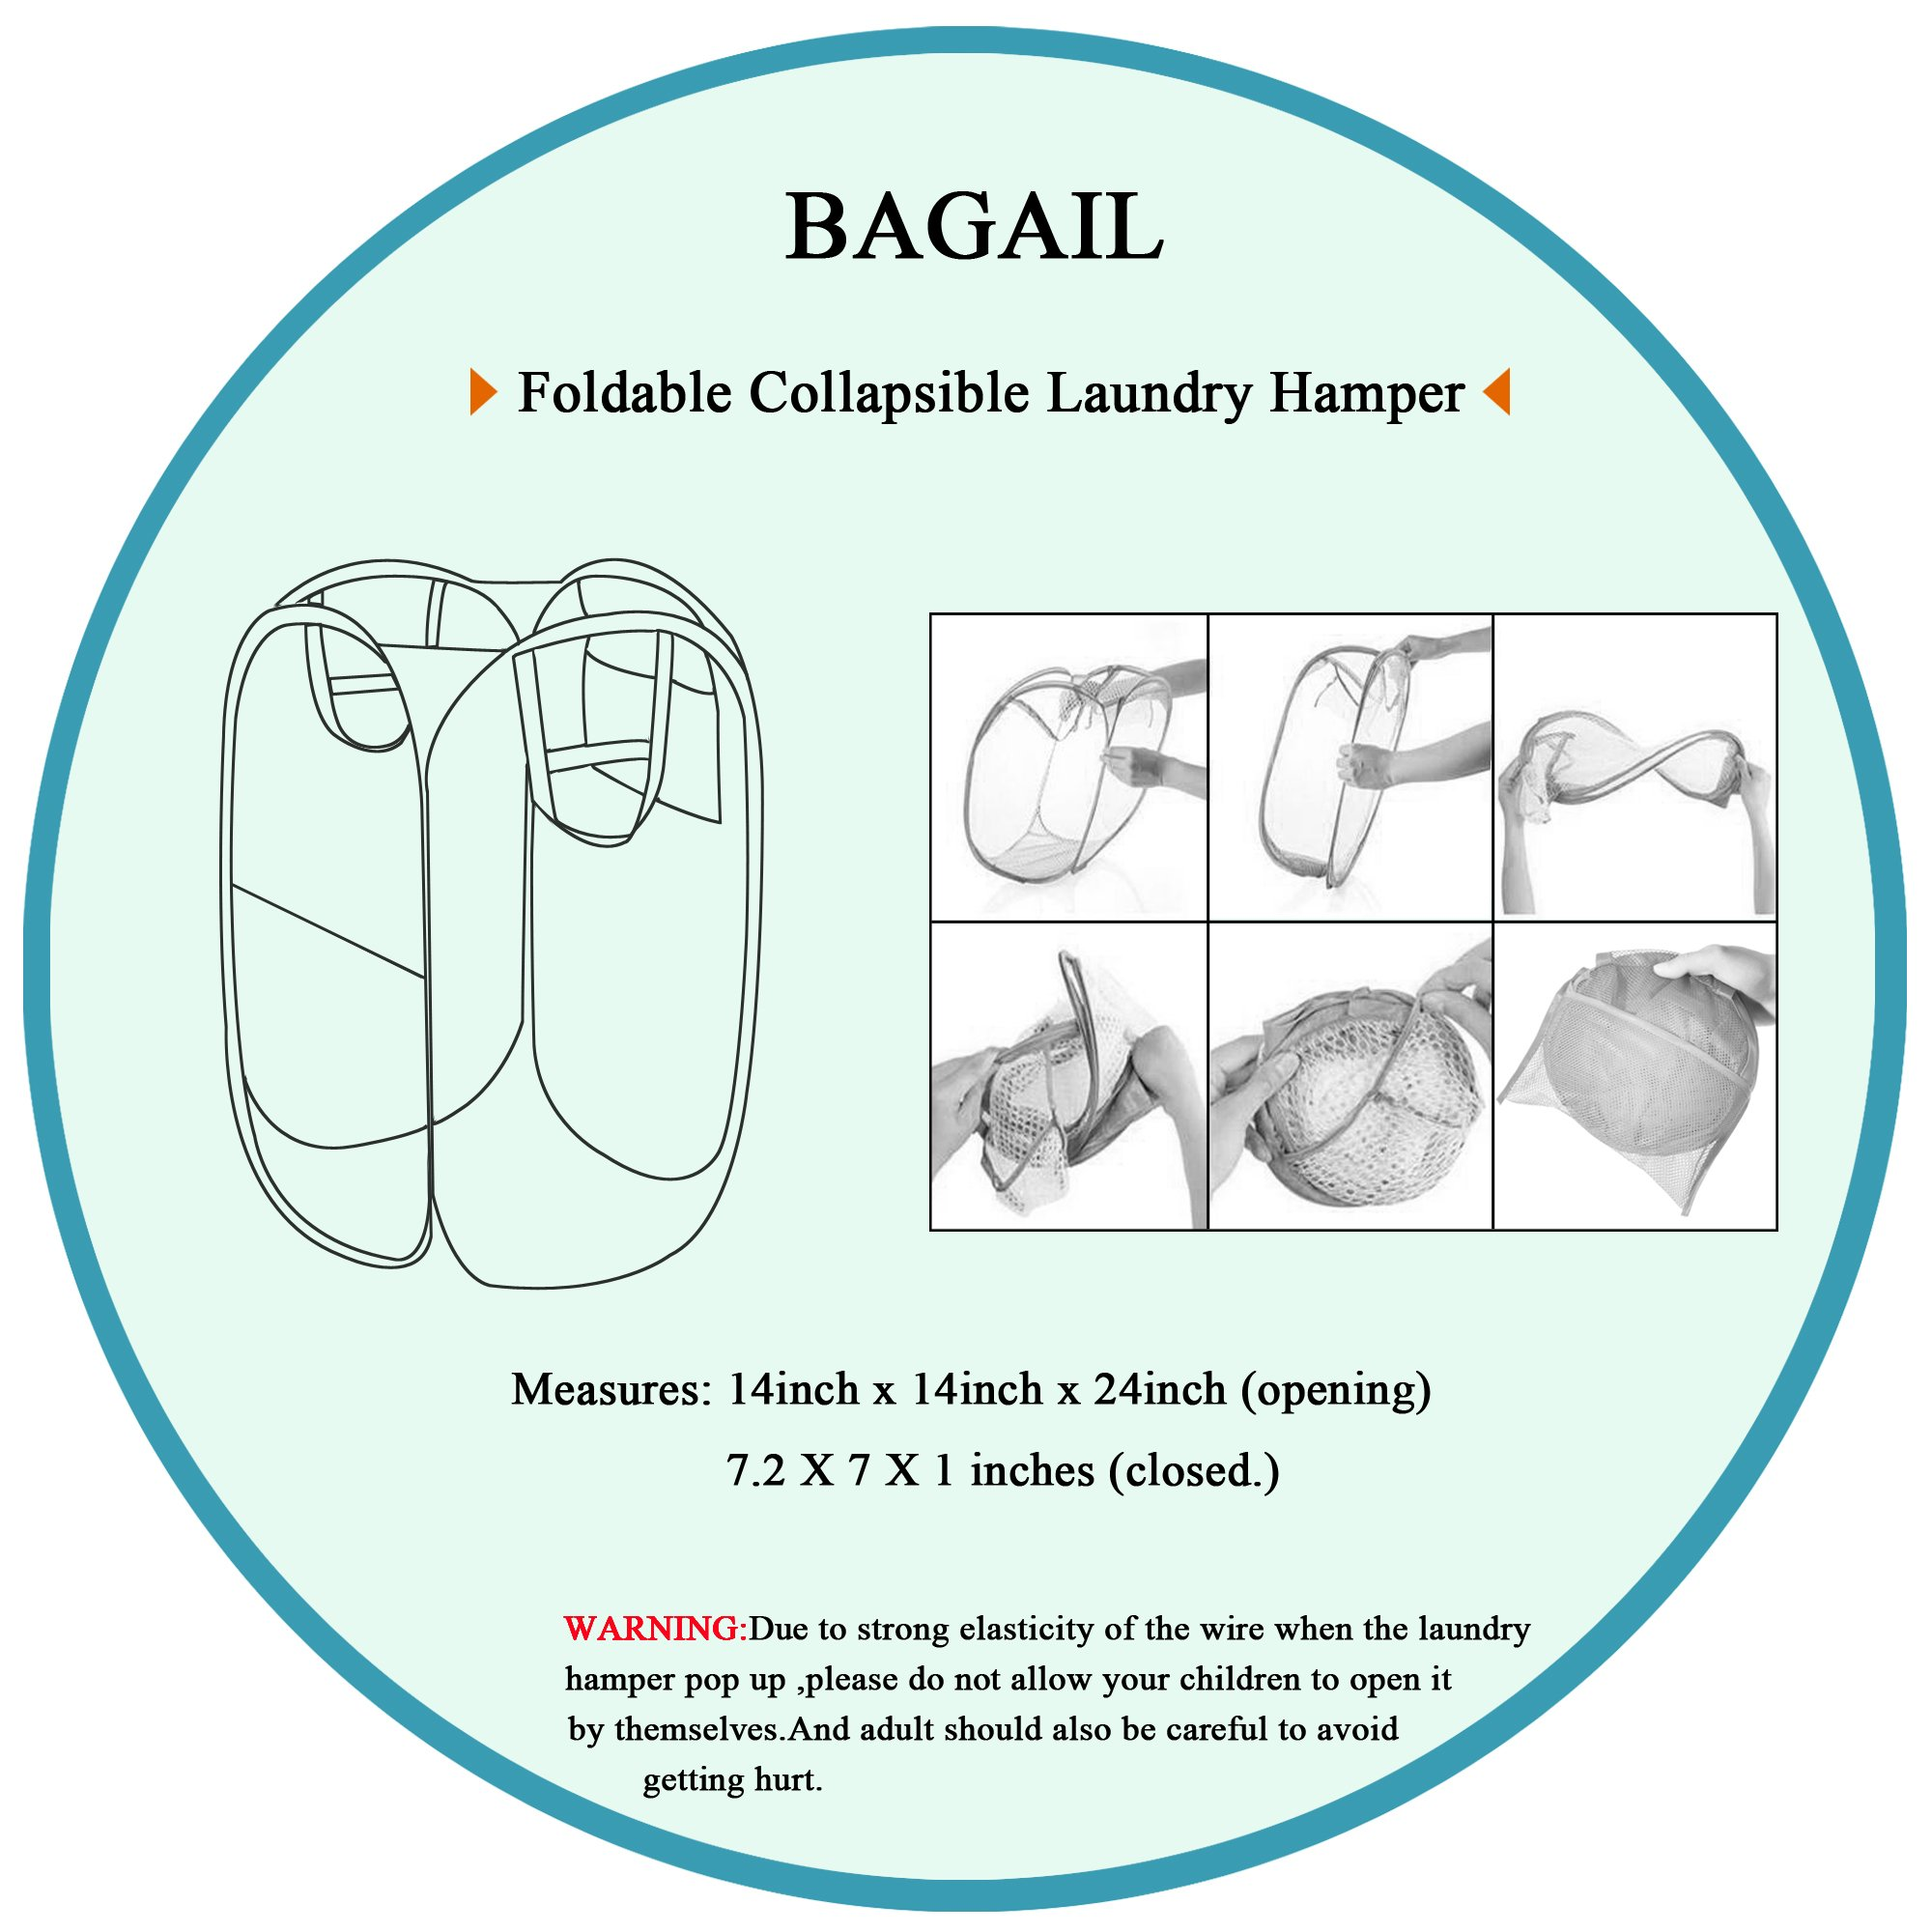 Bagail 2-Pack Pop-up Mesh Laundry Hamper with Reinforced Carry Handles,Foldable Collapsible Laundry Basket with Side Pocket by BAGAIL (Image #6)